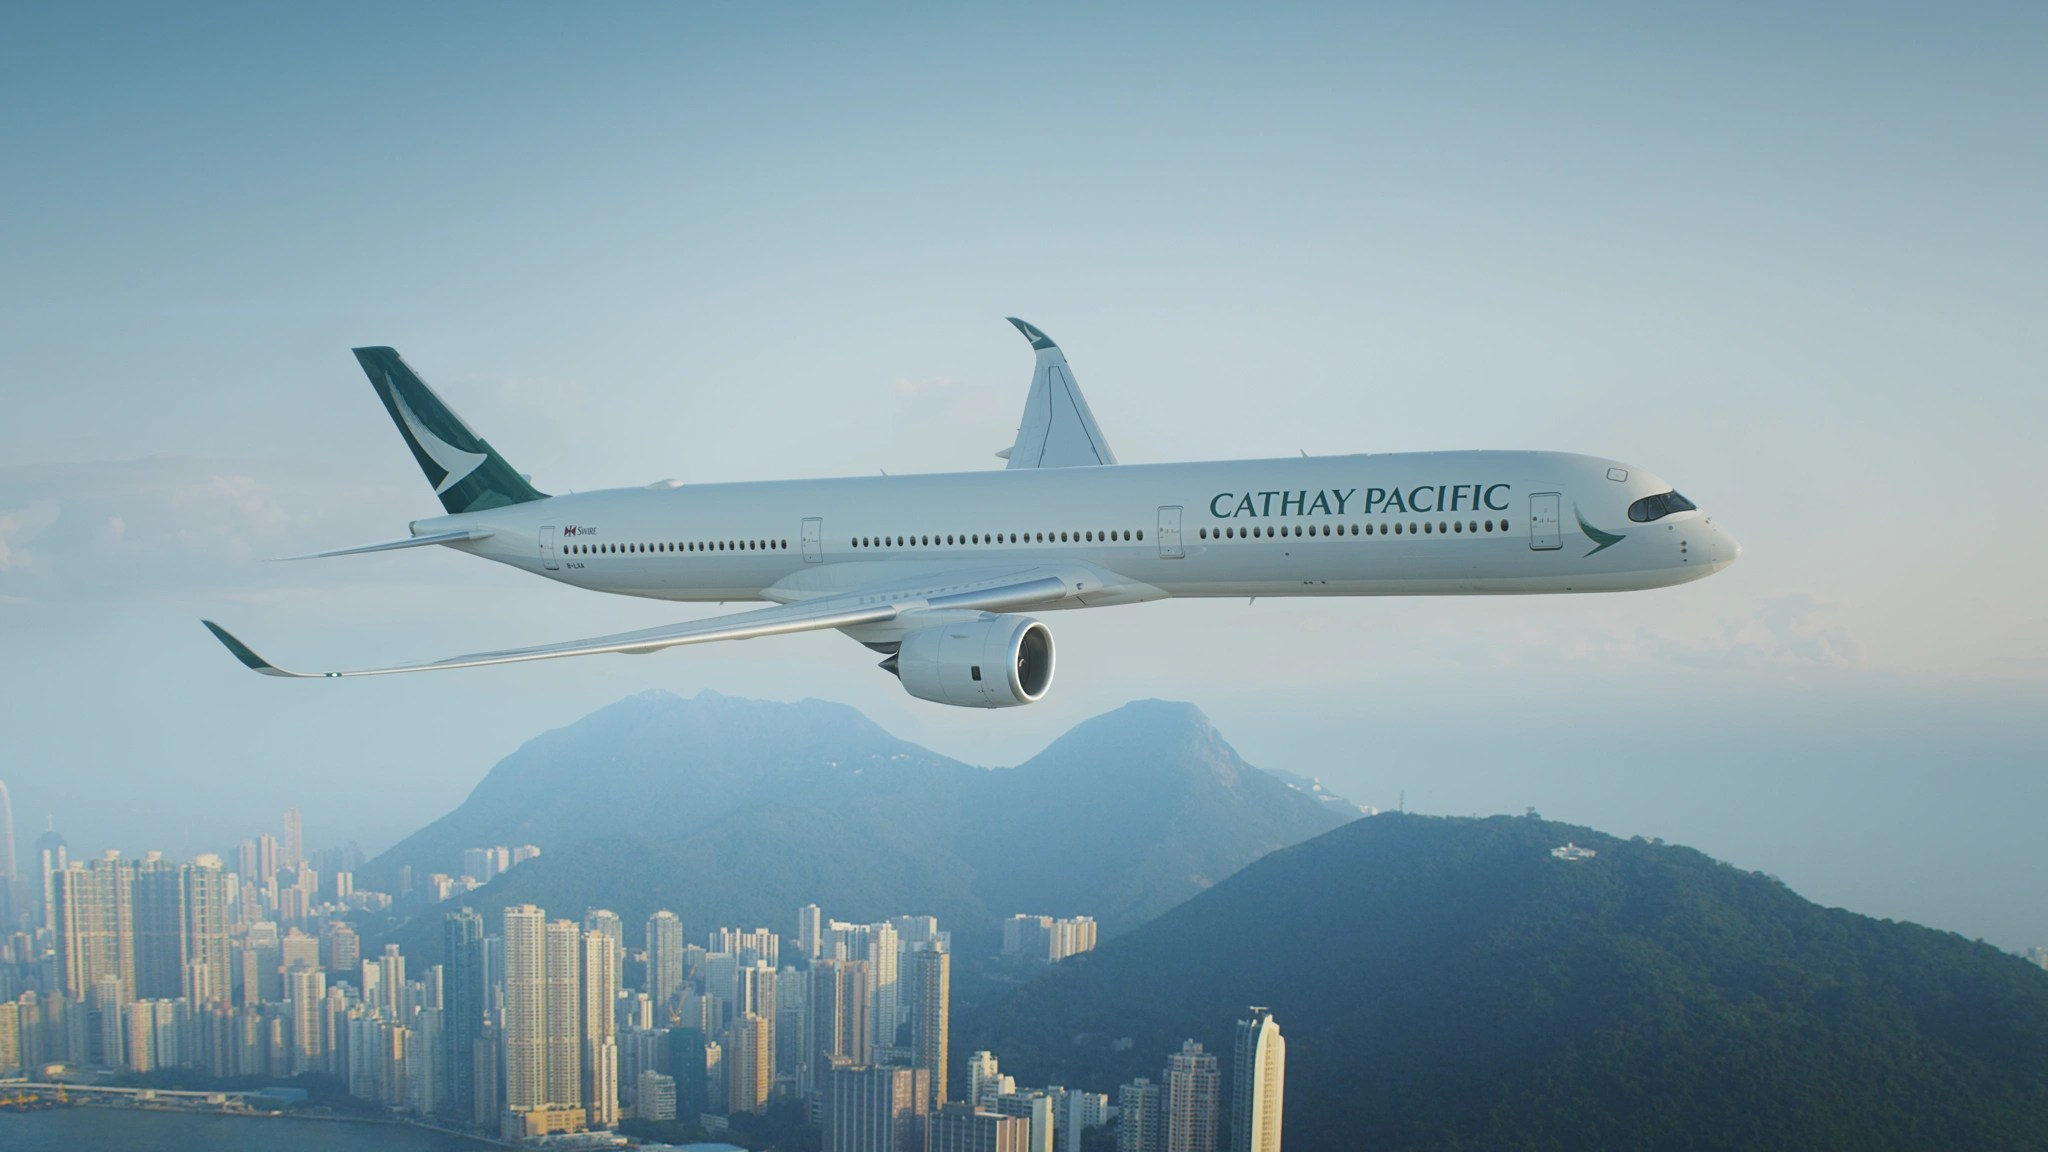 Cathay Pacific Media Statement (20 September 2019) - Cathay Pacific